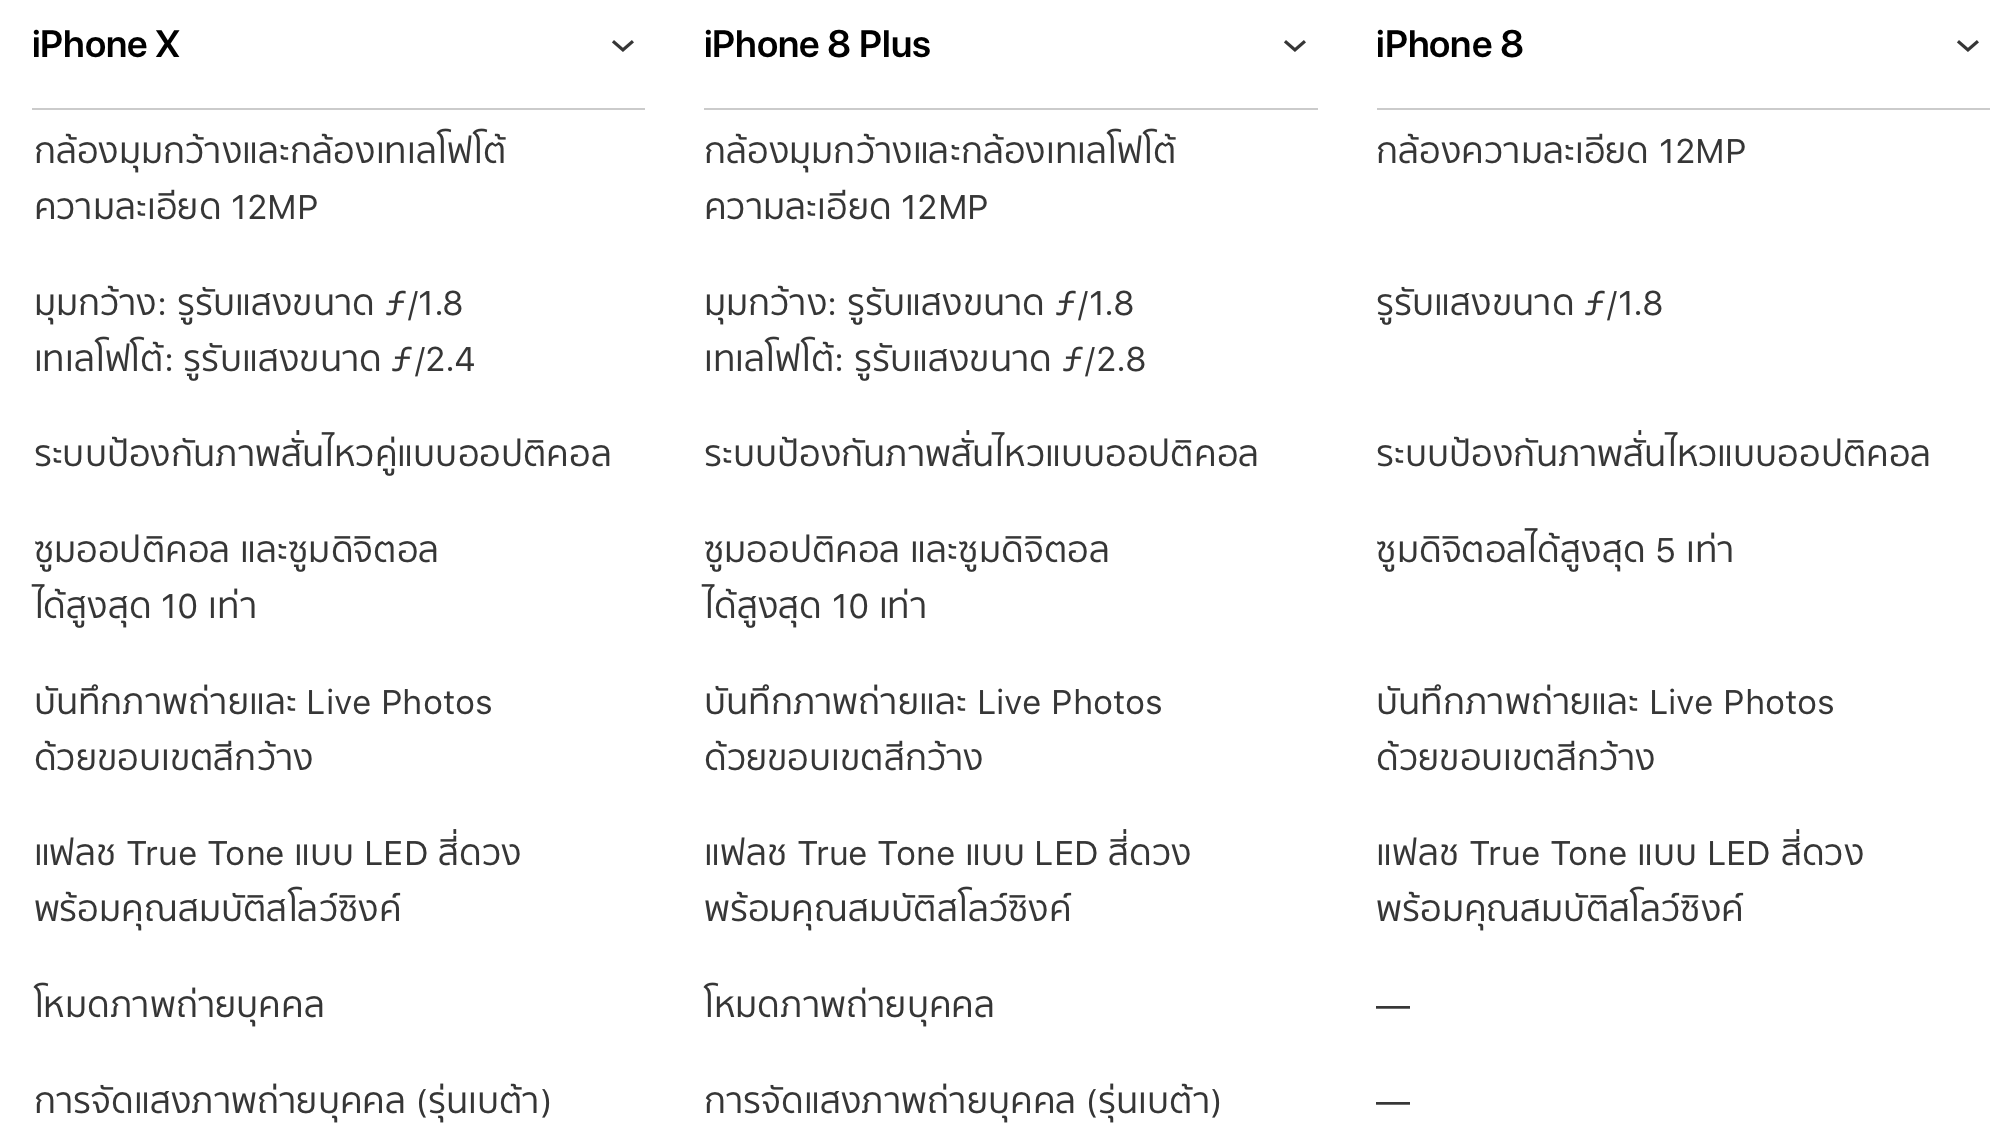 Compare-iPhone-X-iPhone-8-and-iPhone-8-Plus-00007